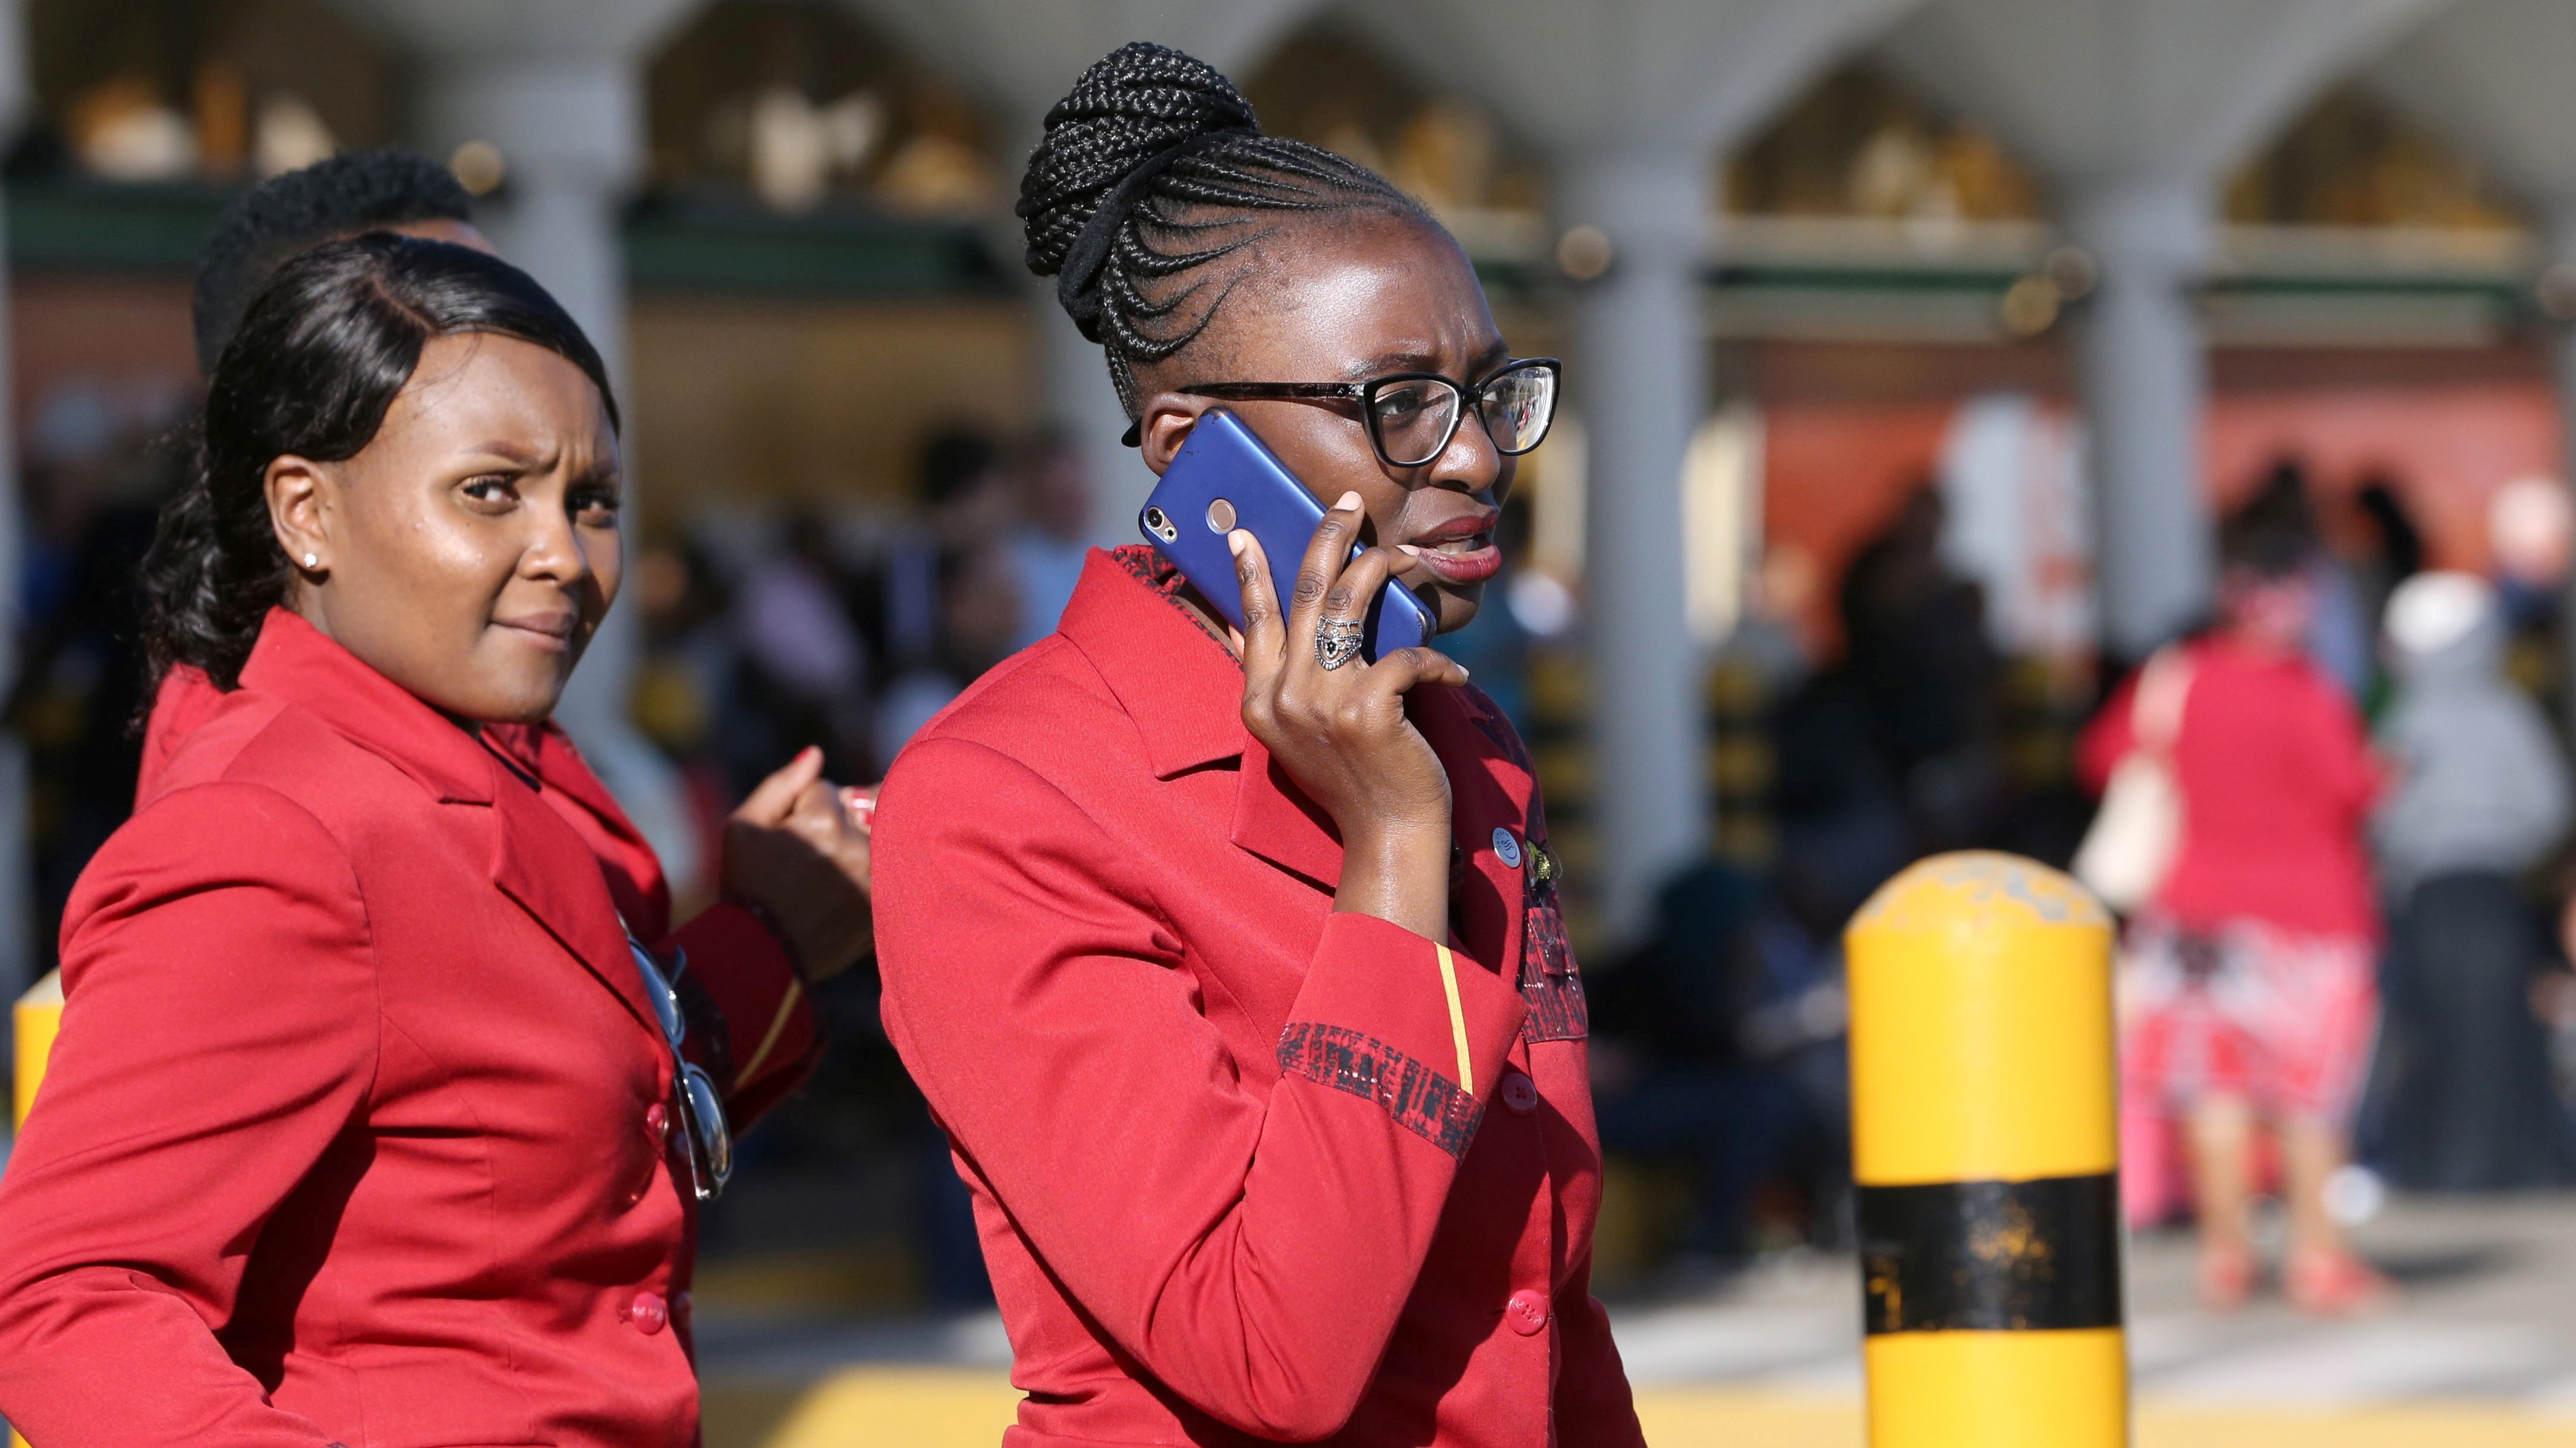 A flight attendant in red attire and glasses talks on her blue mobile phone while another one walks behind her.